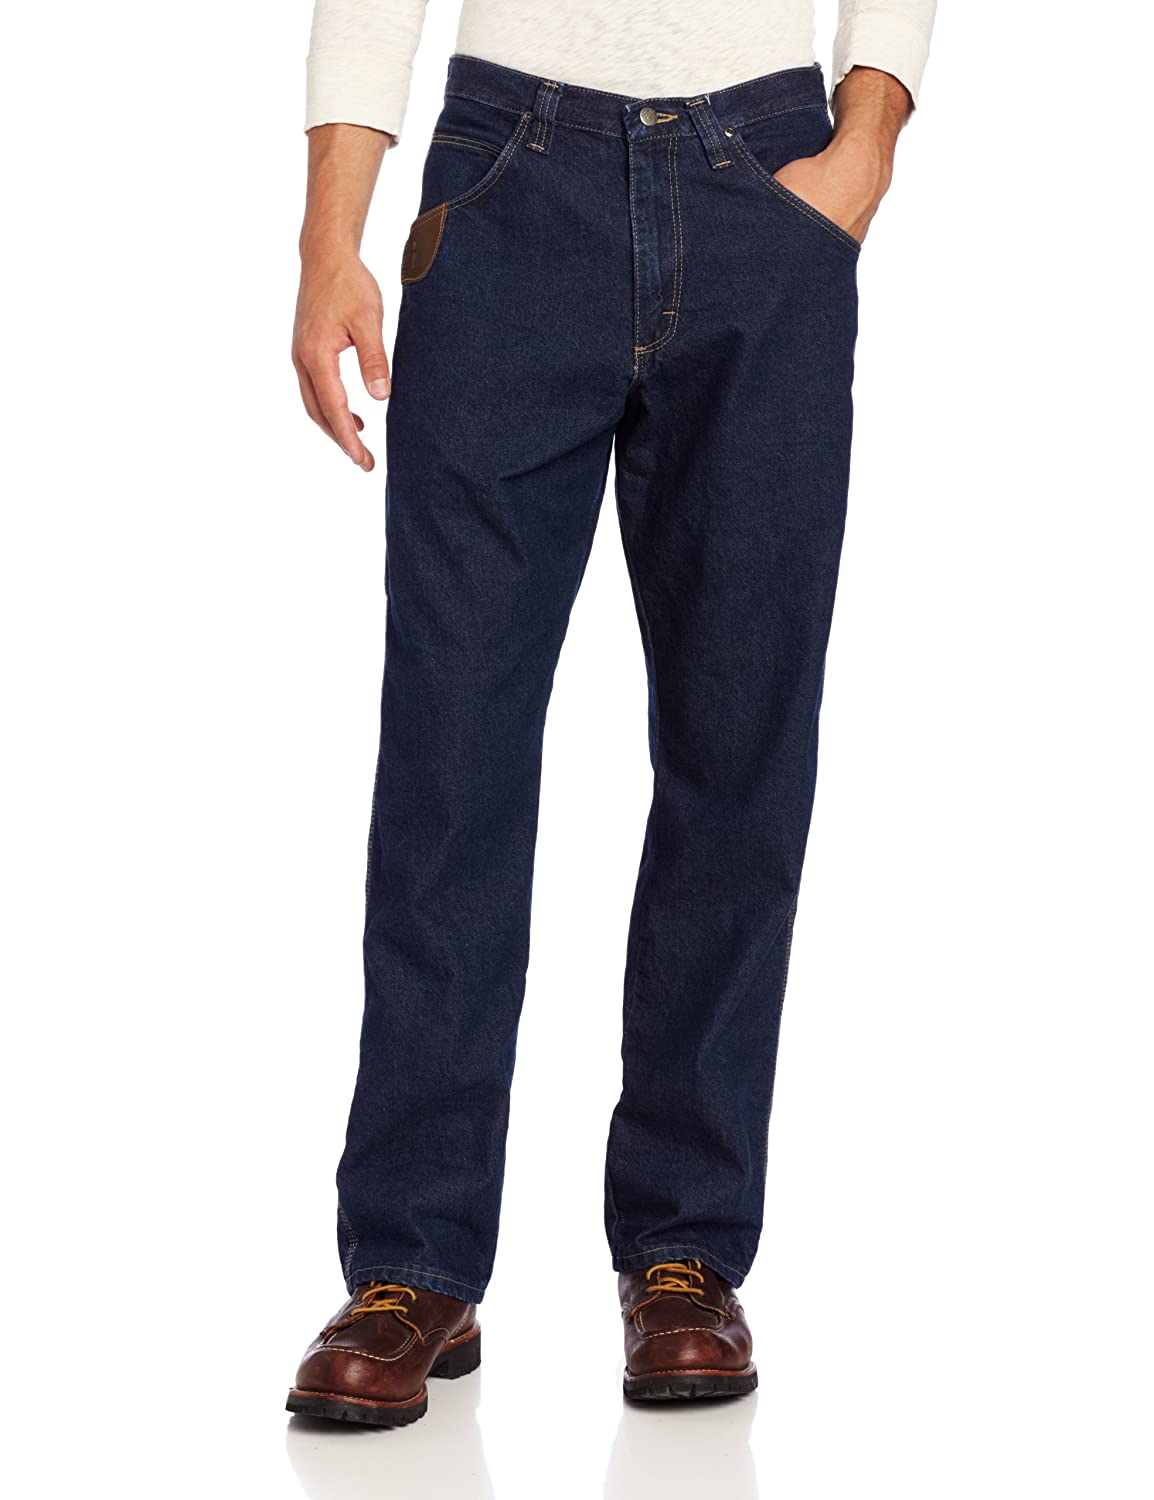 768102d2 Chinabrands.com: Dropshipping & Wholesale cheap Wrangler RIGGS WORKWEAR Mens  Contractor Jean online.